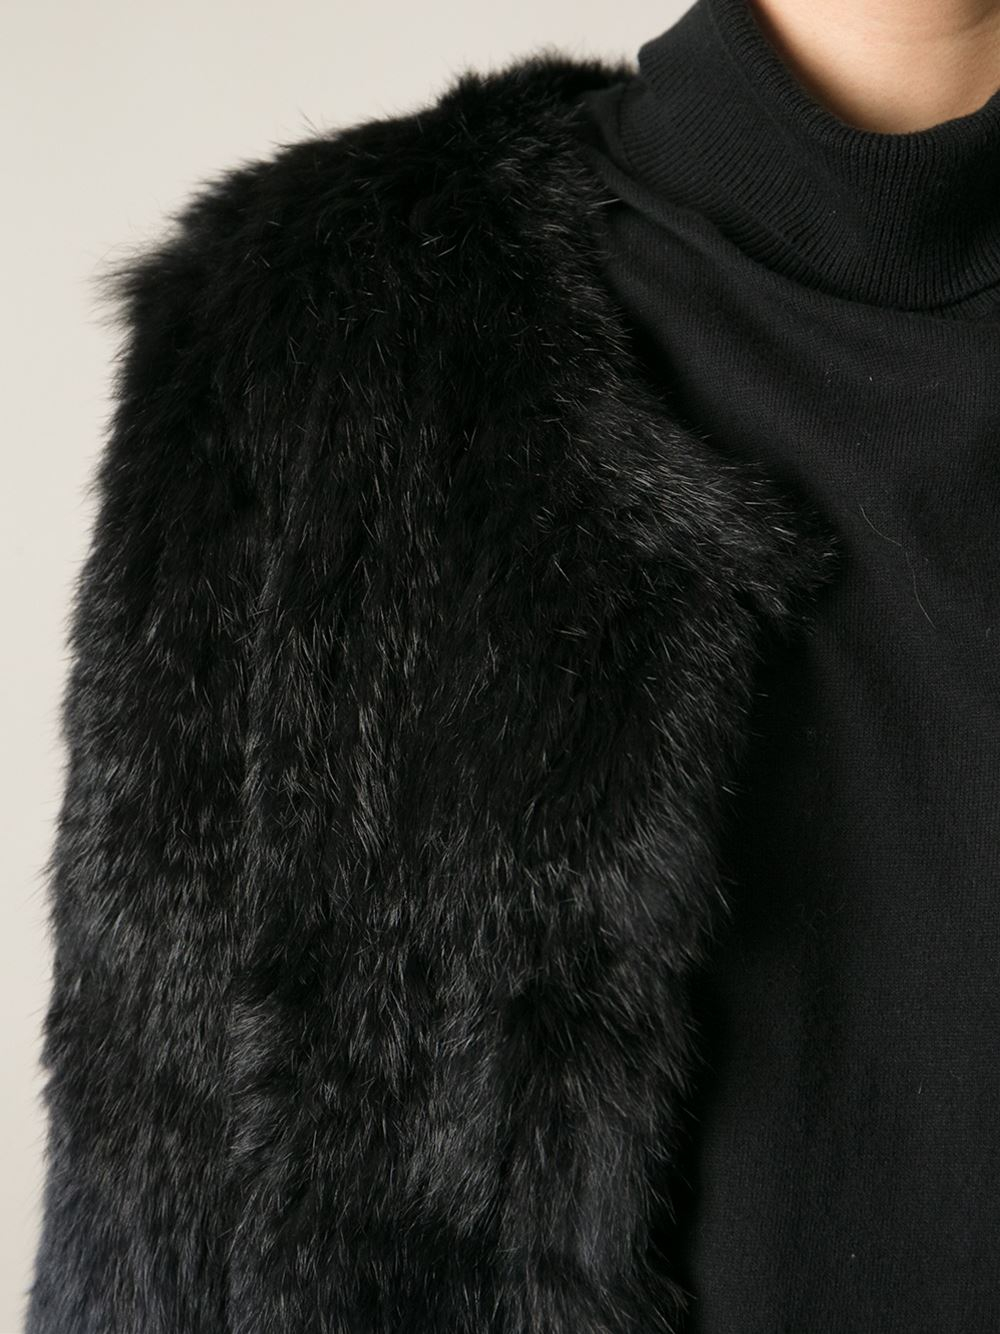 new arrive 100% high quality hot new products Cropped Fur Jacket